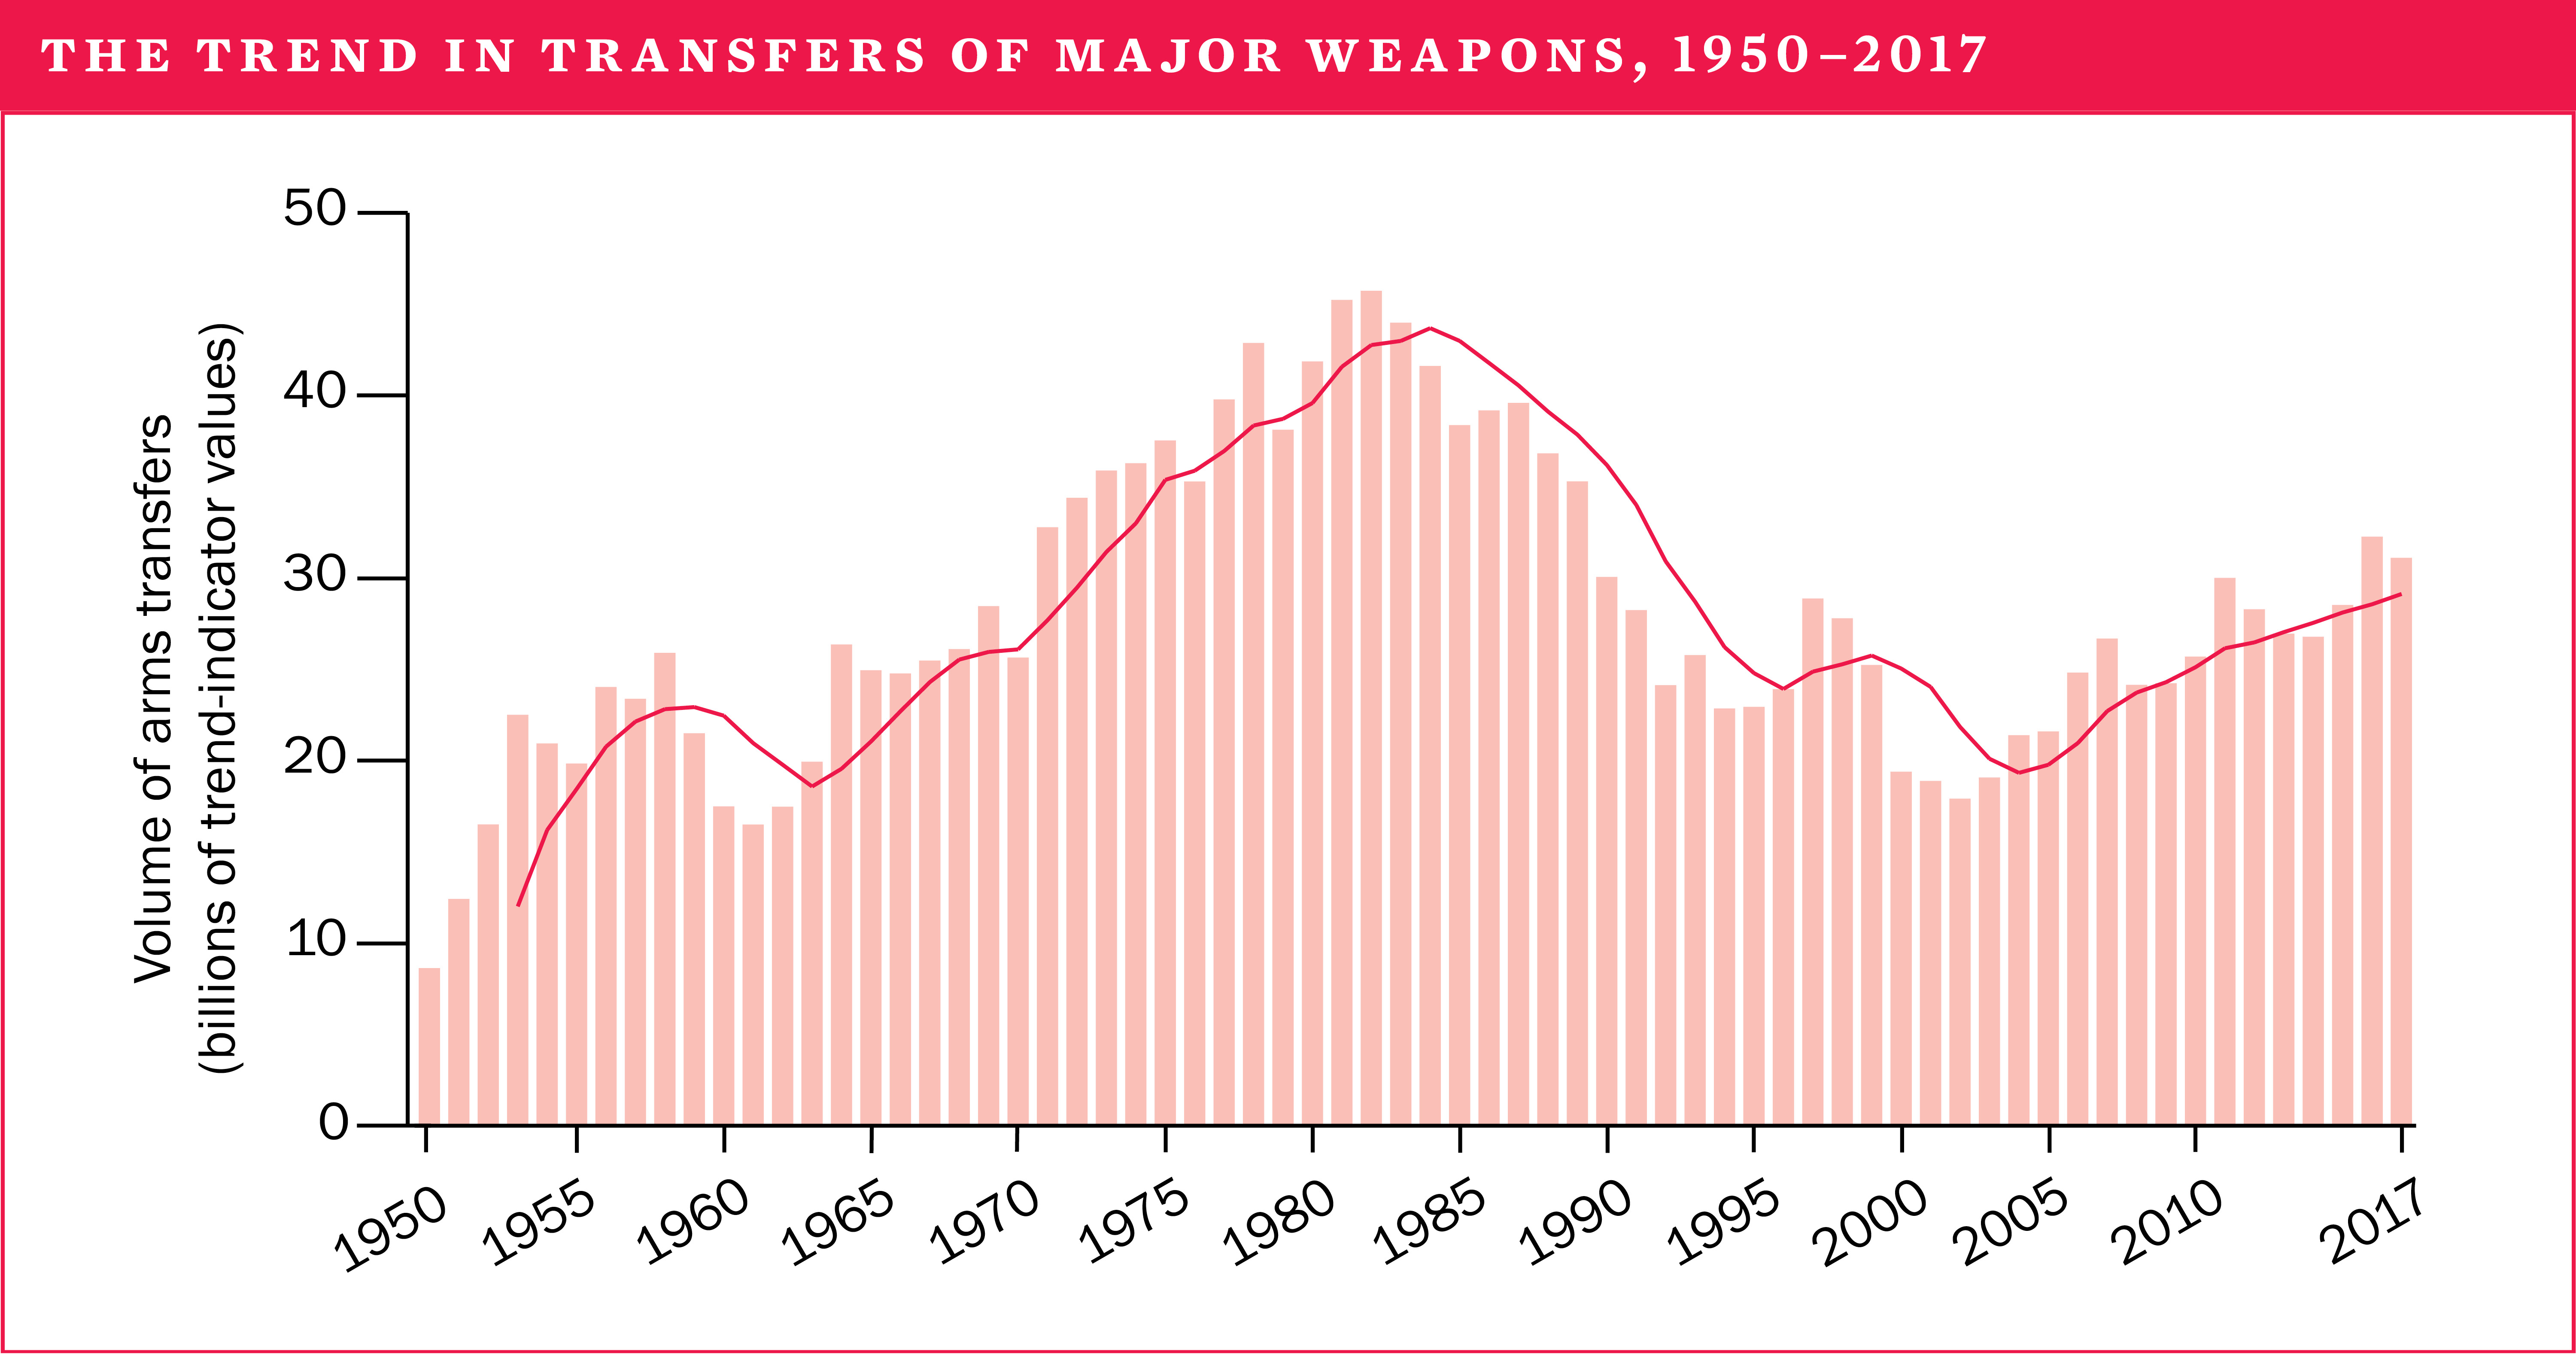 The trend in transfers of major weapons, 1950-2017